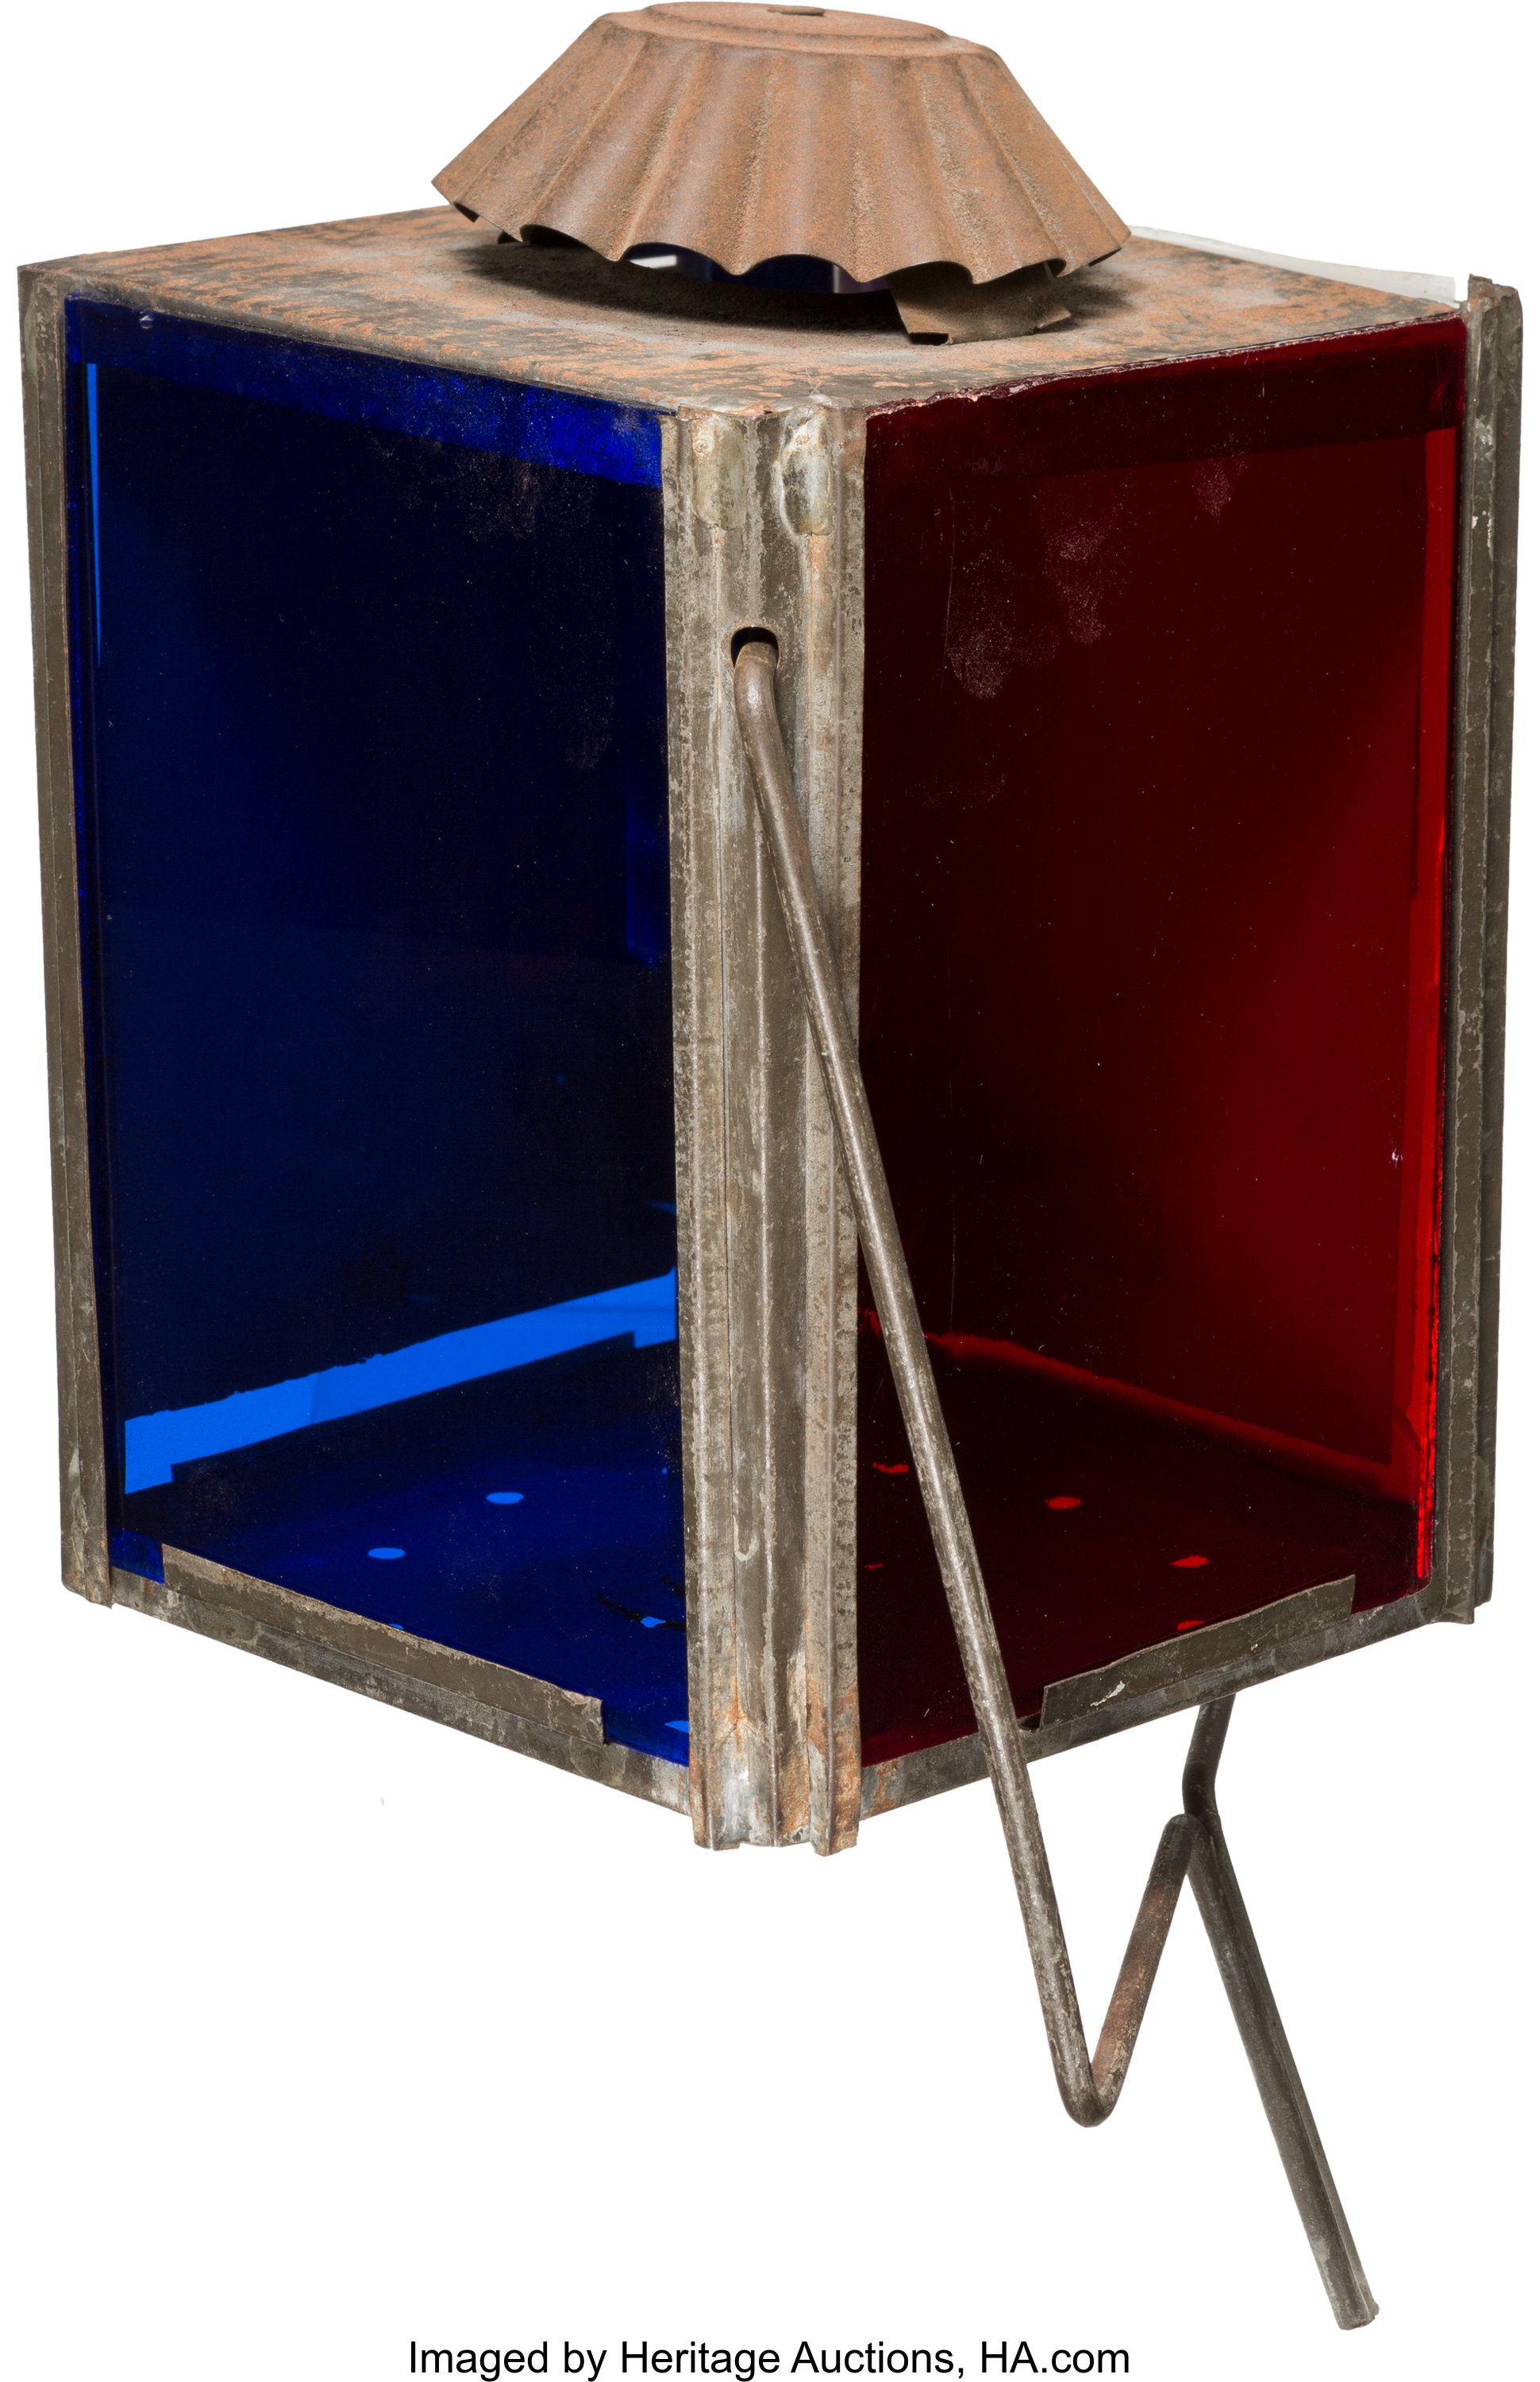 The rare circa 1860s campaign parade lantern for Abraham Lincoln, showing the other two sides of the four-sided object. One is entirely blue, and the other is entirely red.